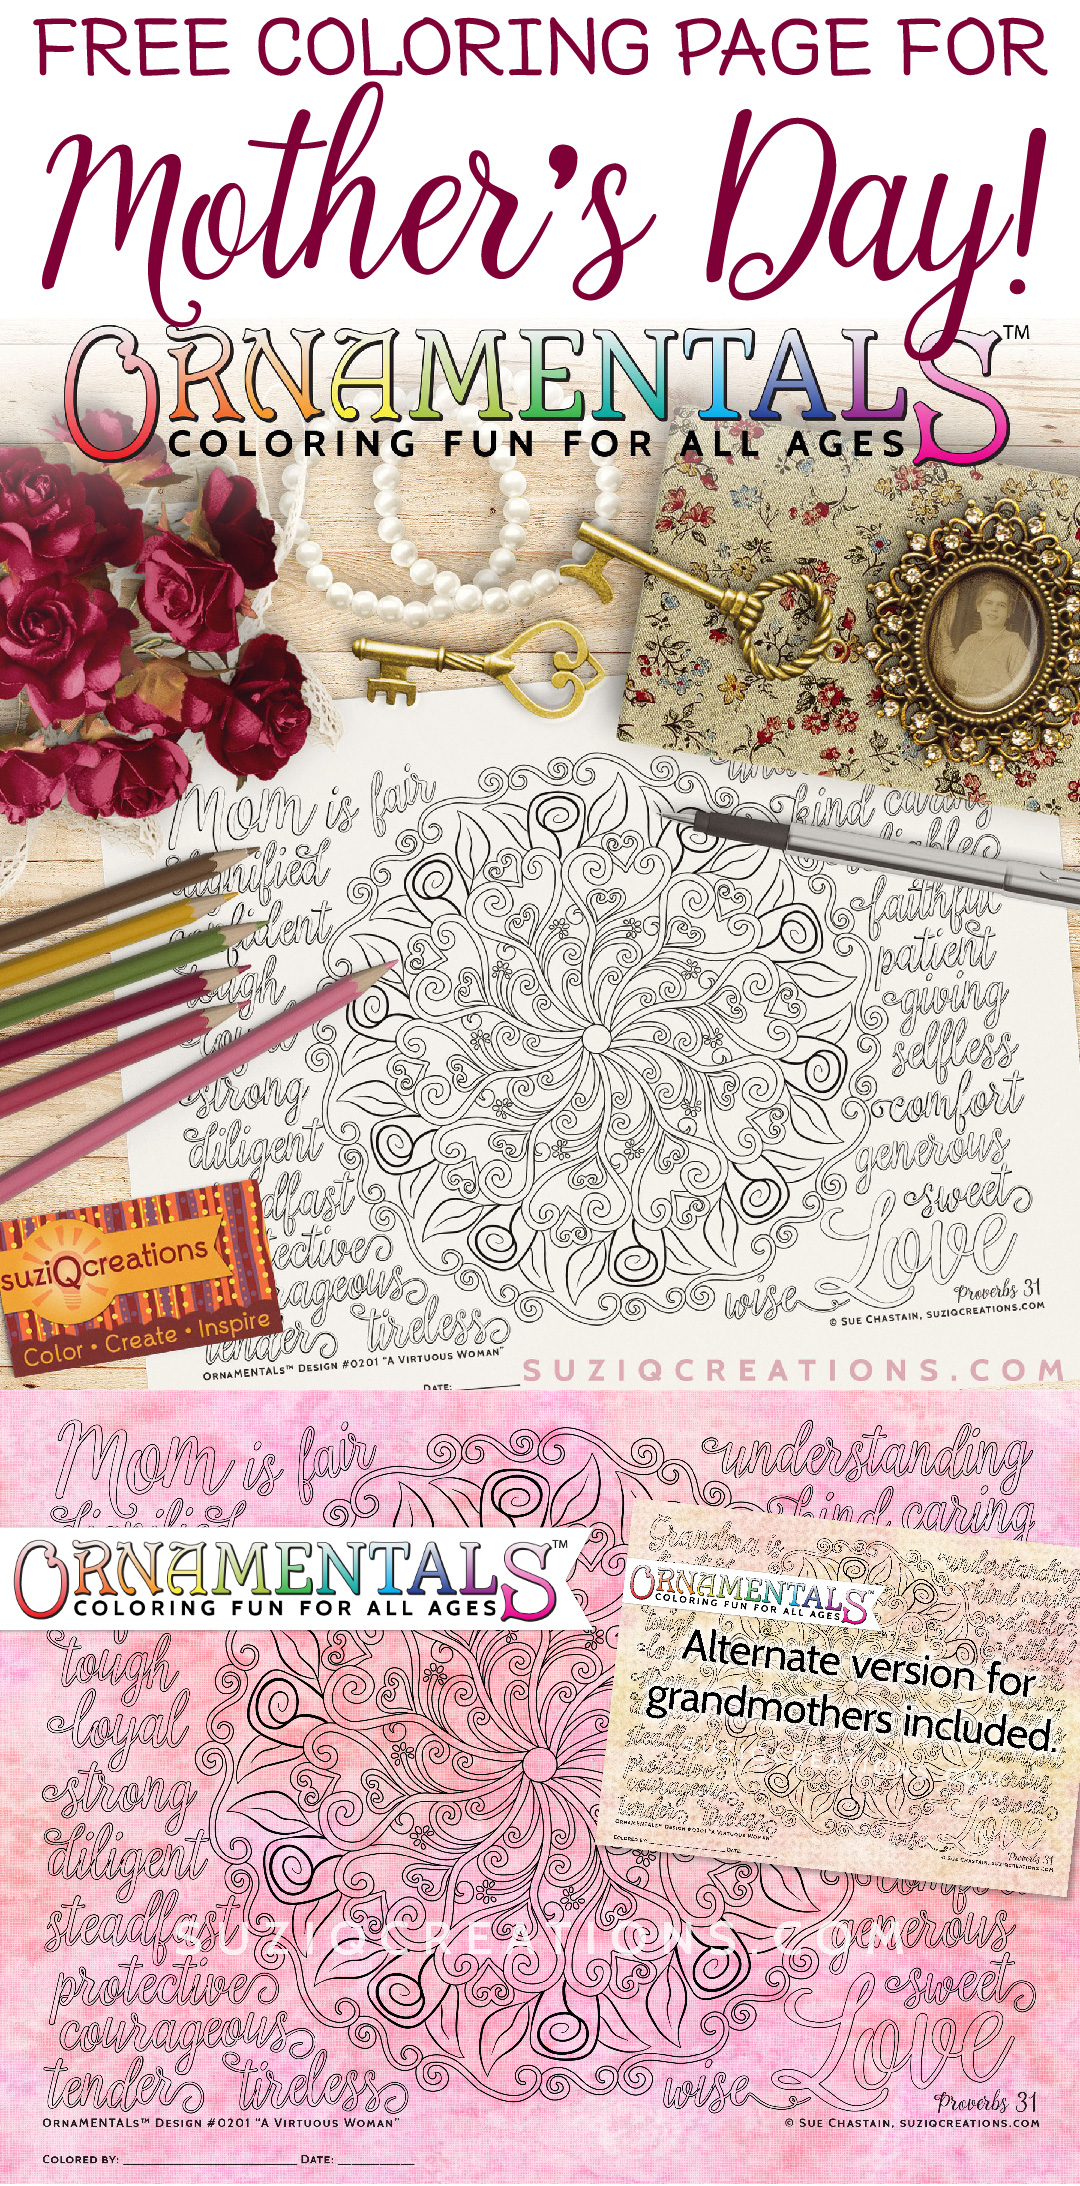 A Virtuous Woman Coloring Page - OrnaMENTALs Design 0201